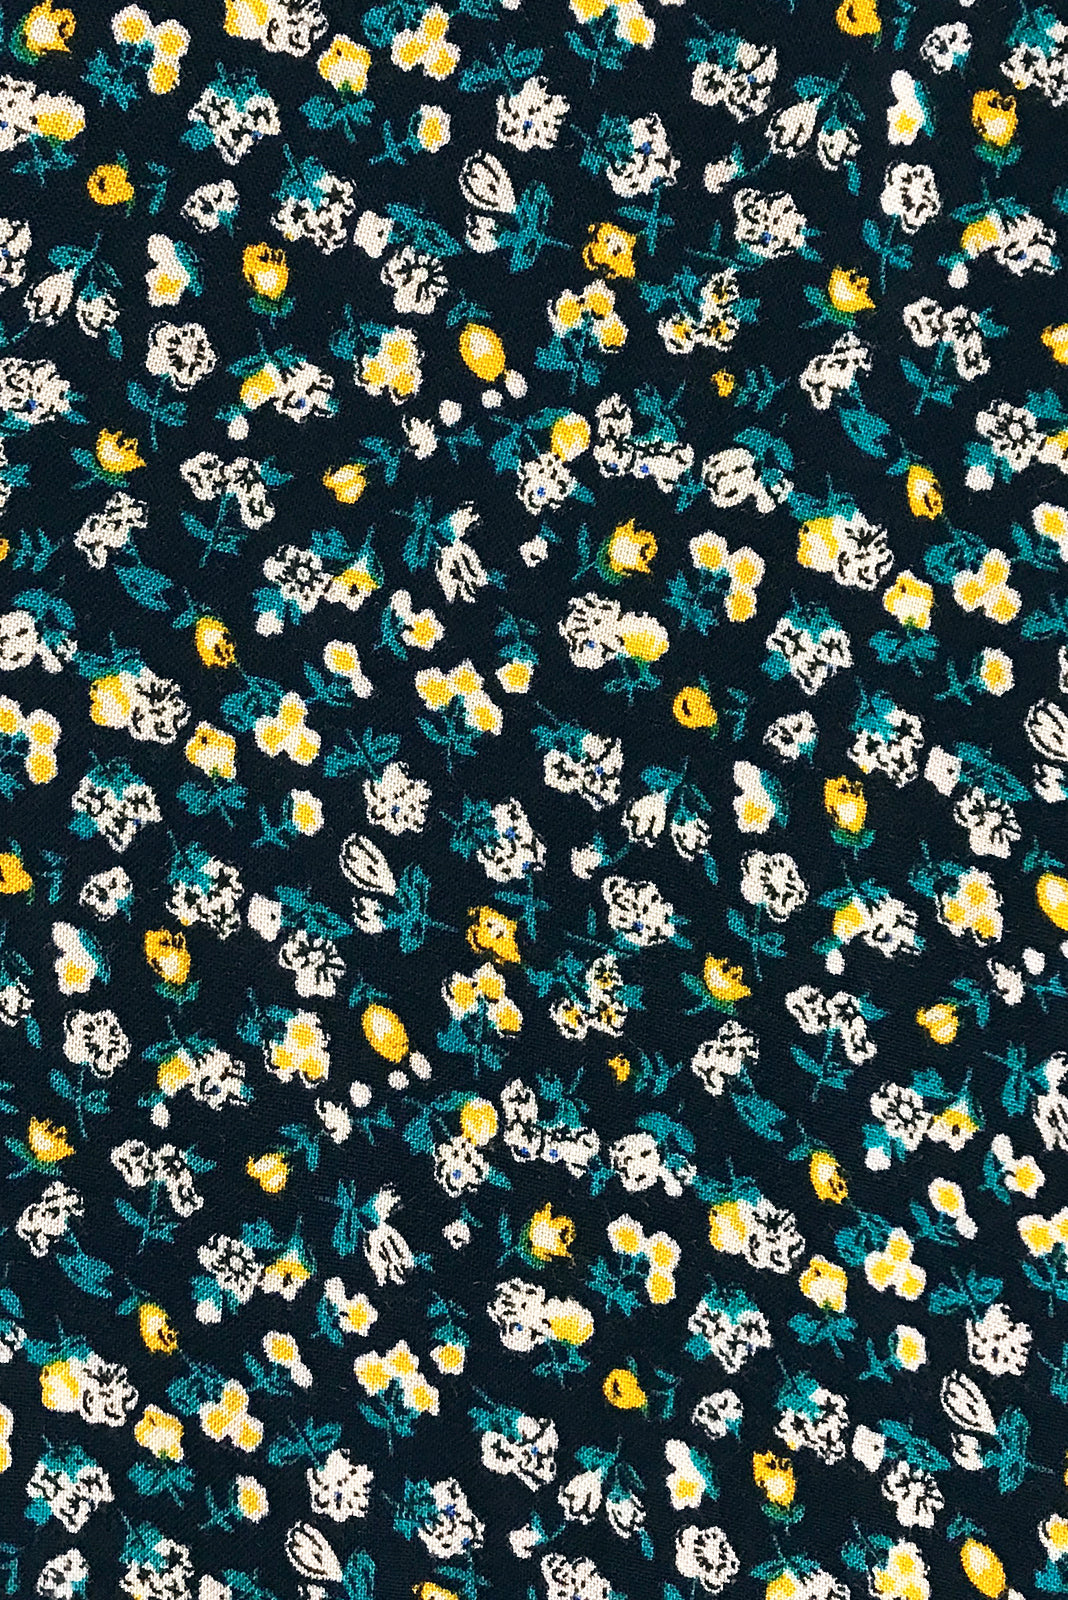 Fabric Swatch of Mayfair Mystery Noir Dress featuring rayon in  Ink black base with vintage inspired floral print.